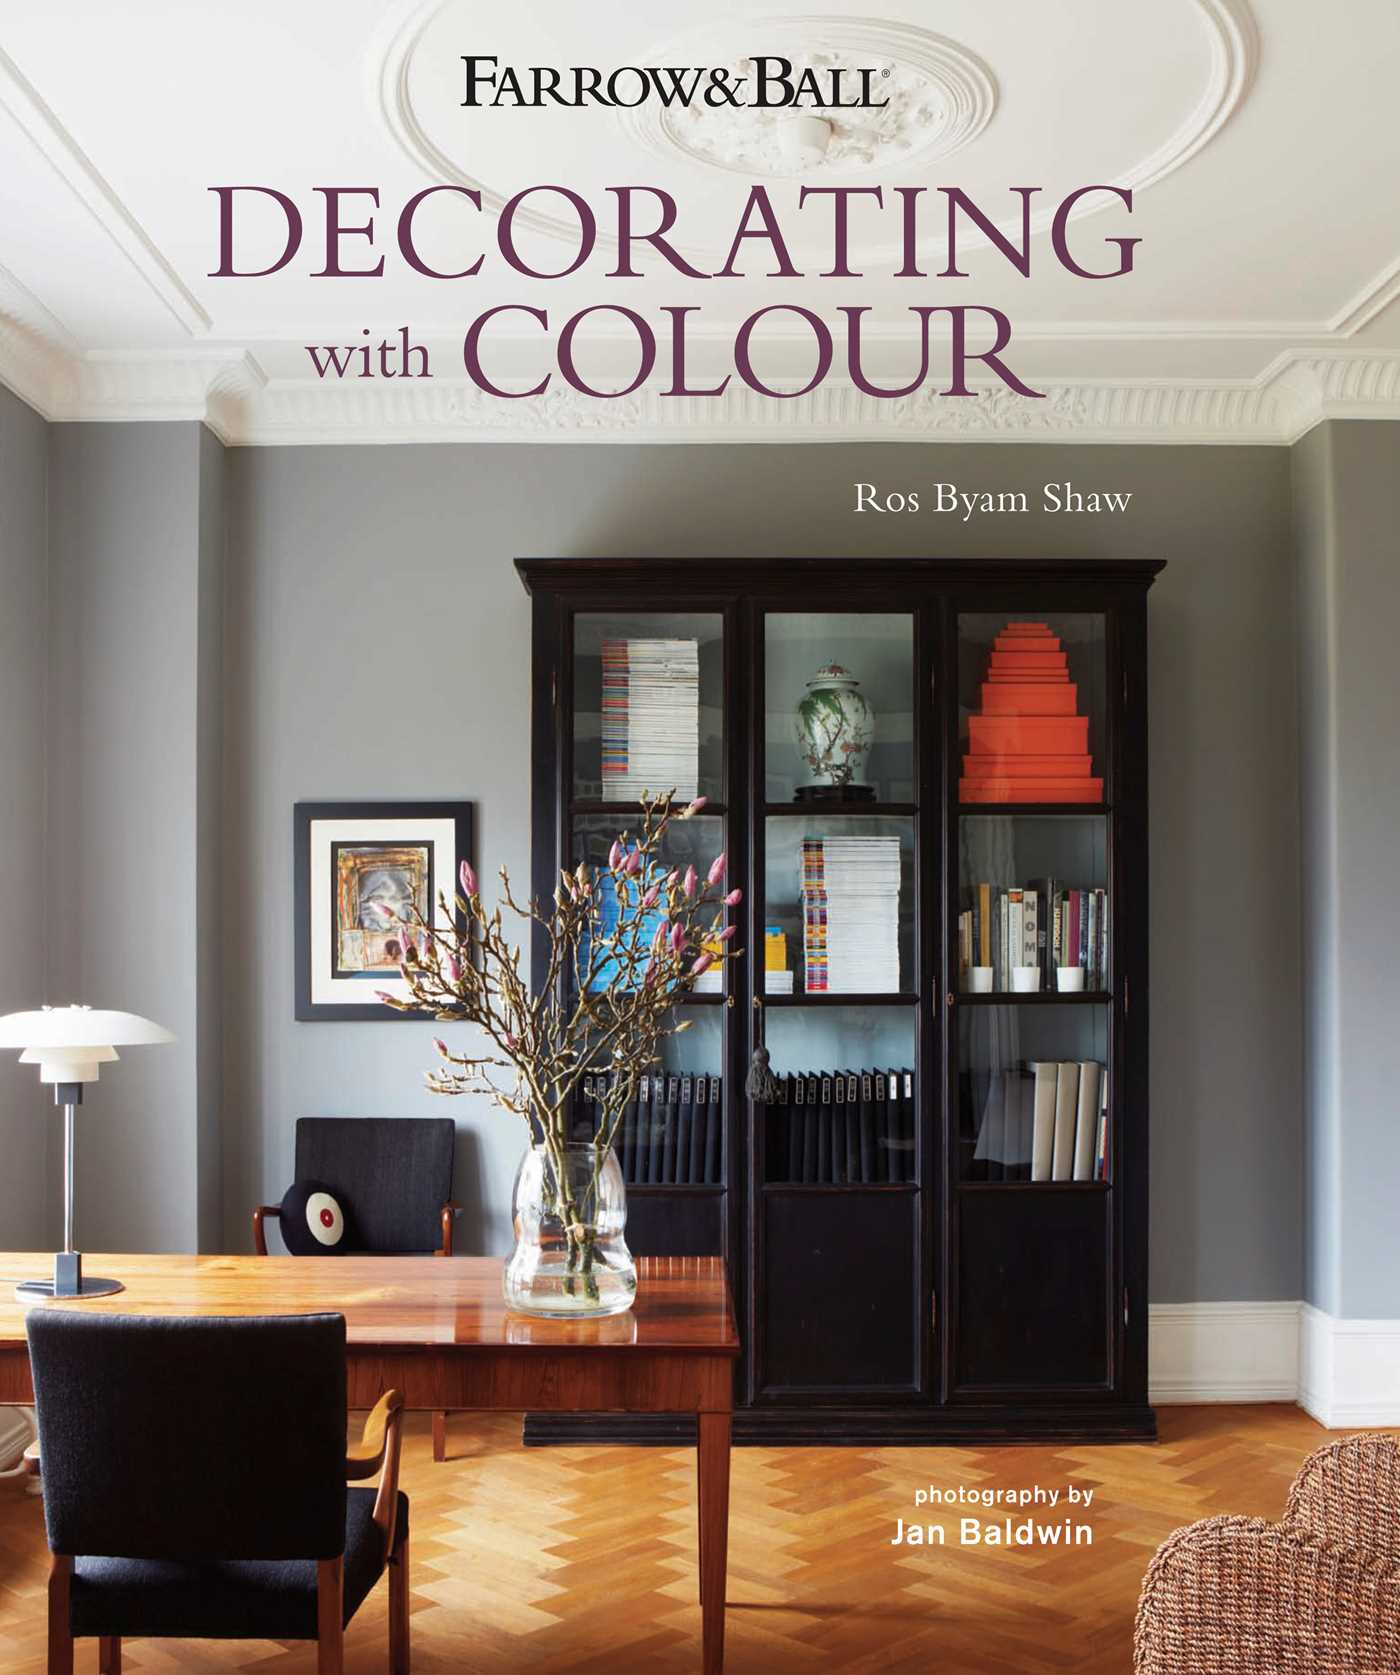 Farrow & Ball Decorating with Colour | Book by Ros Byam Shaw ...